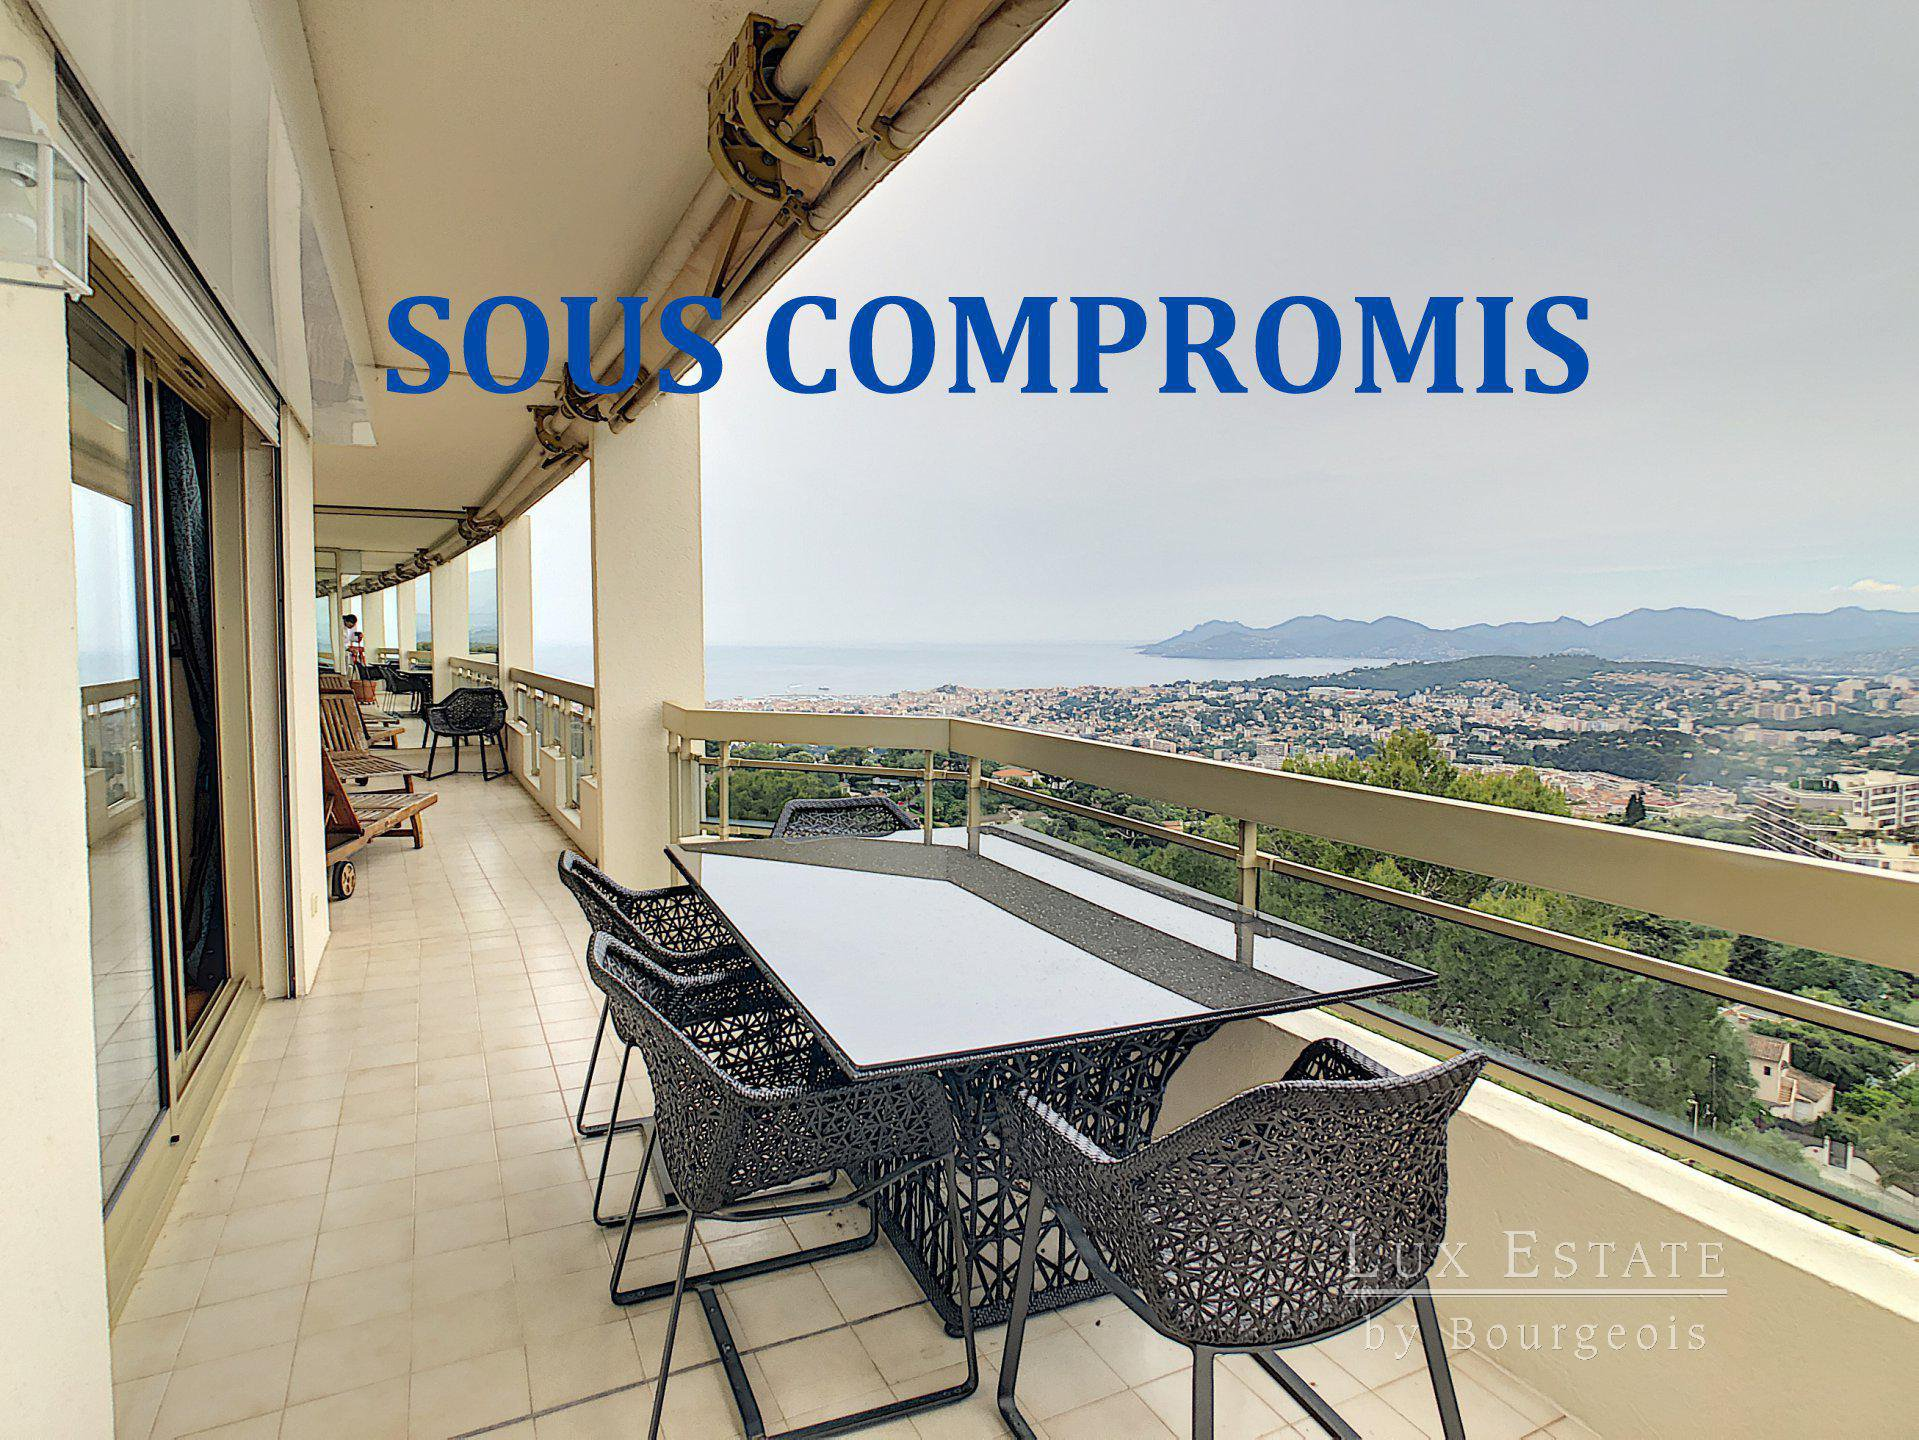 FOR SALE APARTMENT IN MOUGINS